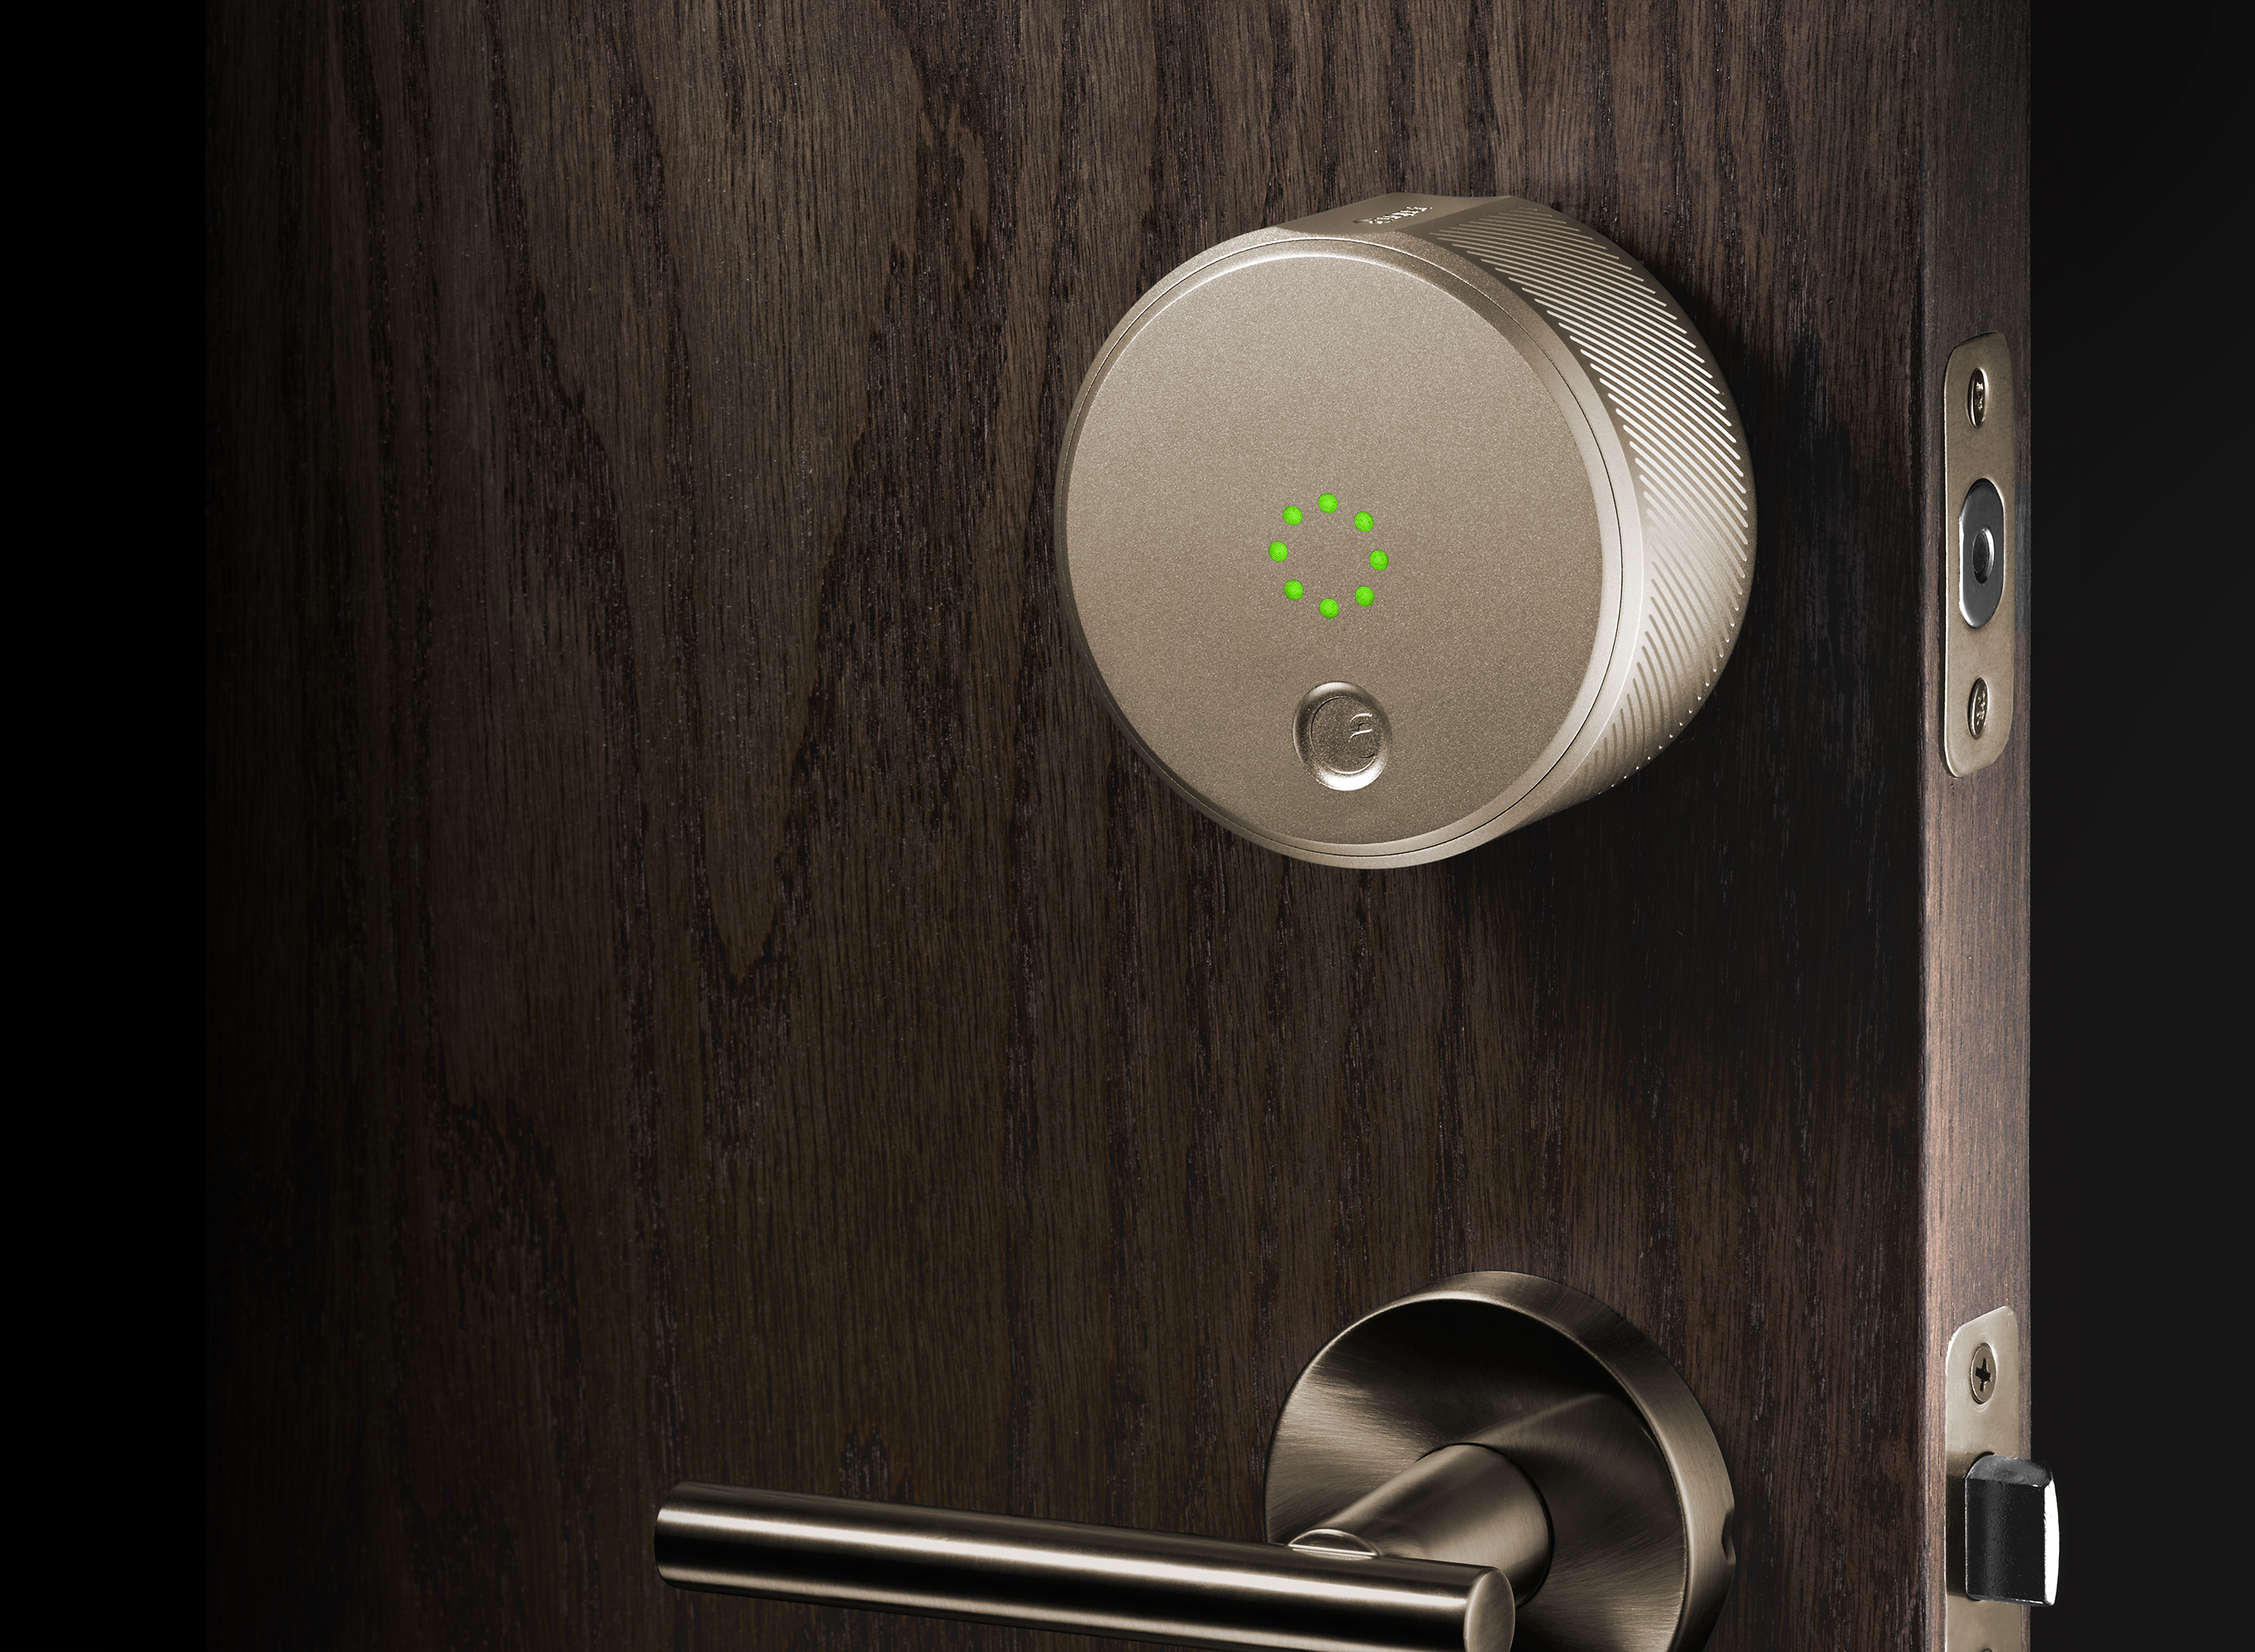 August Smart Lock – iOS 10 smart device